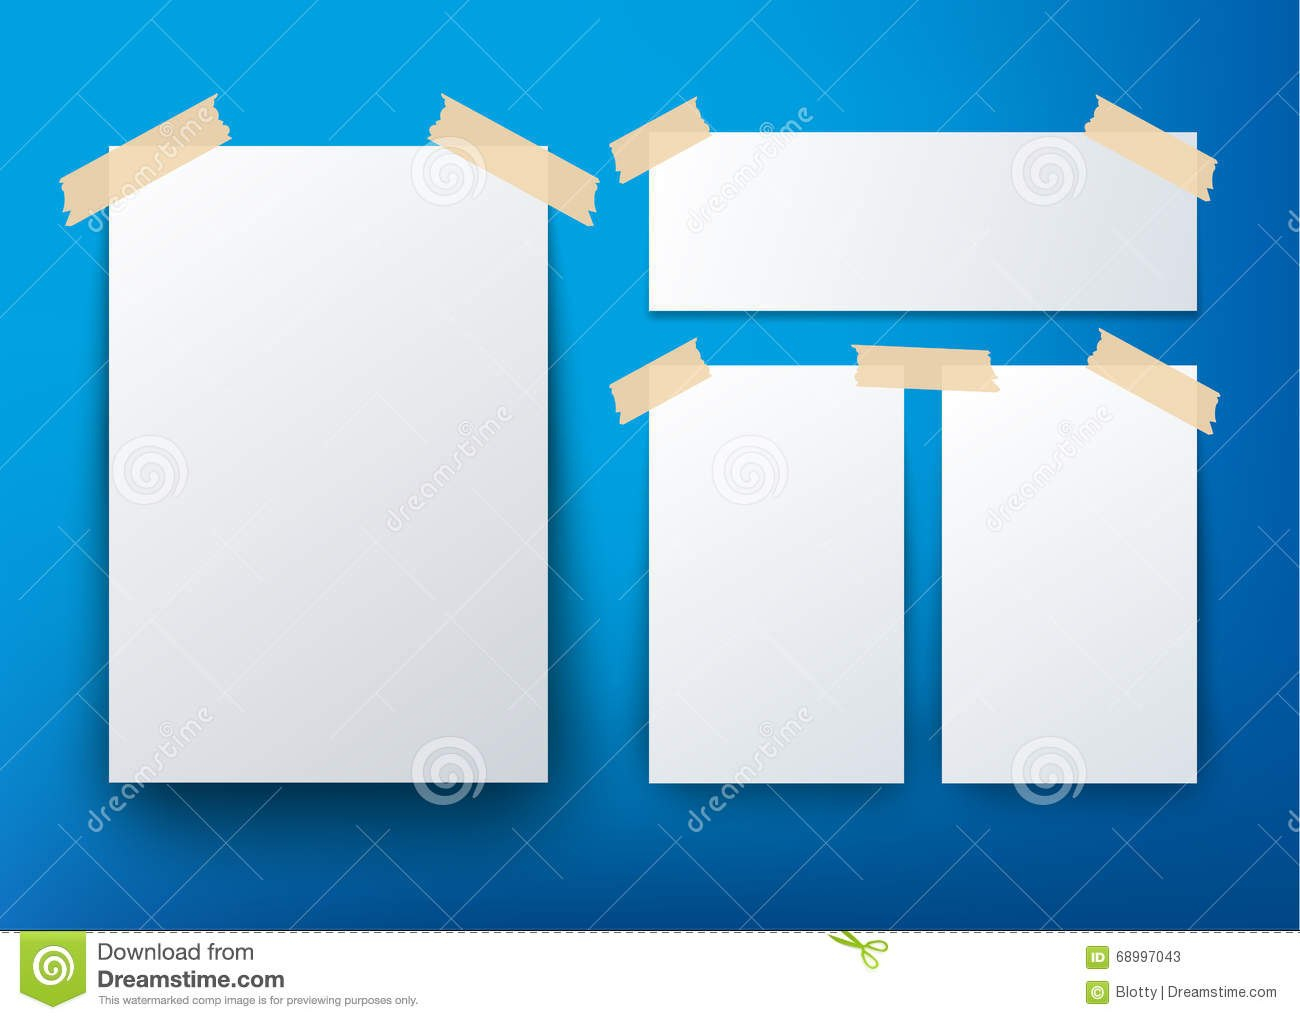 Blank Flyer Template Over Blue Background Stock Vector With Regard To Blank Templates For Flyers